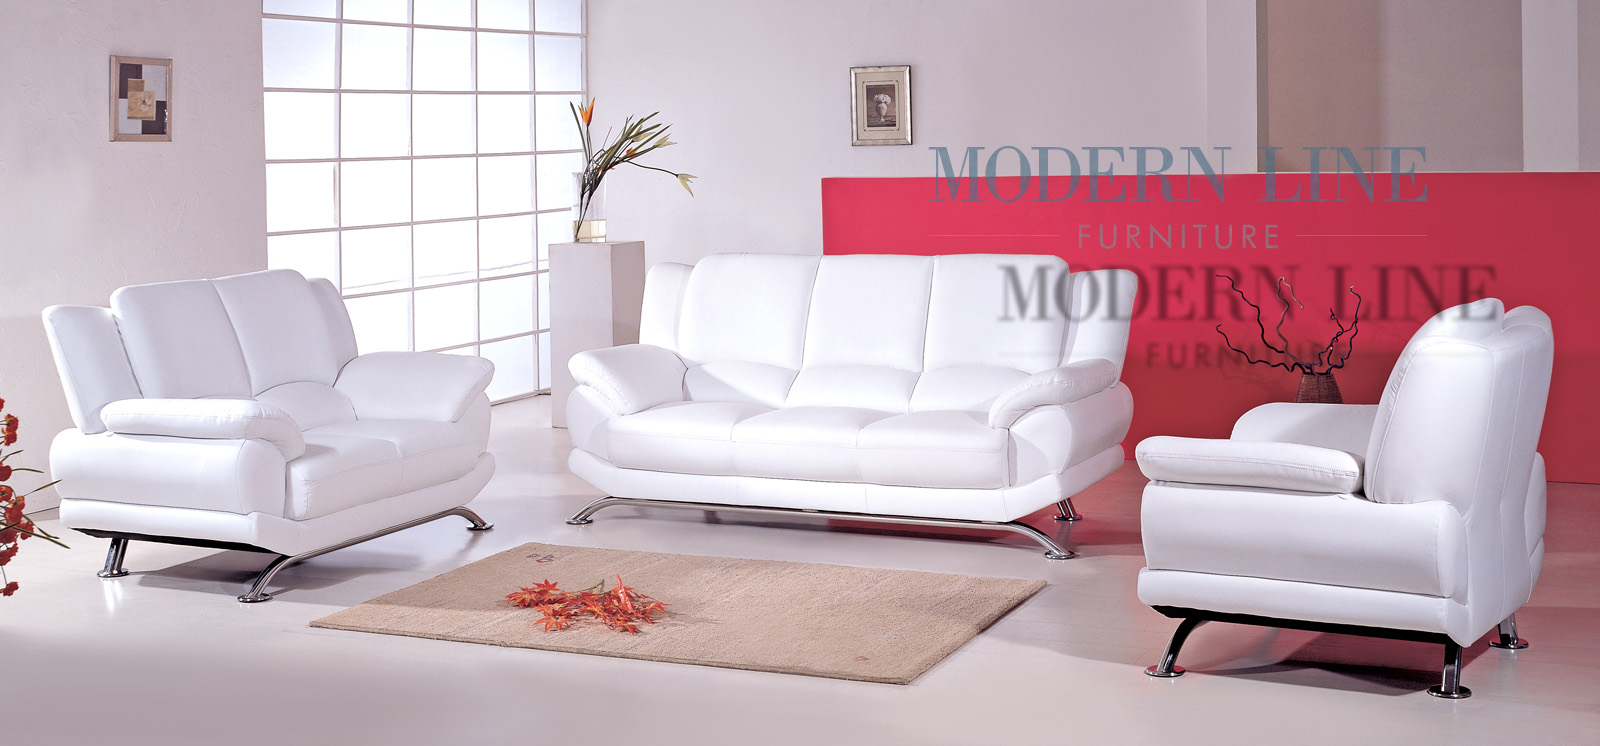 deals on reclining sofas sears sectional sofa bed white leather furniture set   roselawnlutheran